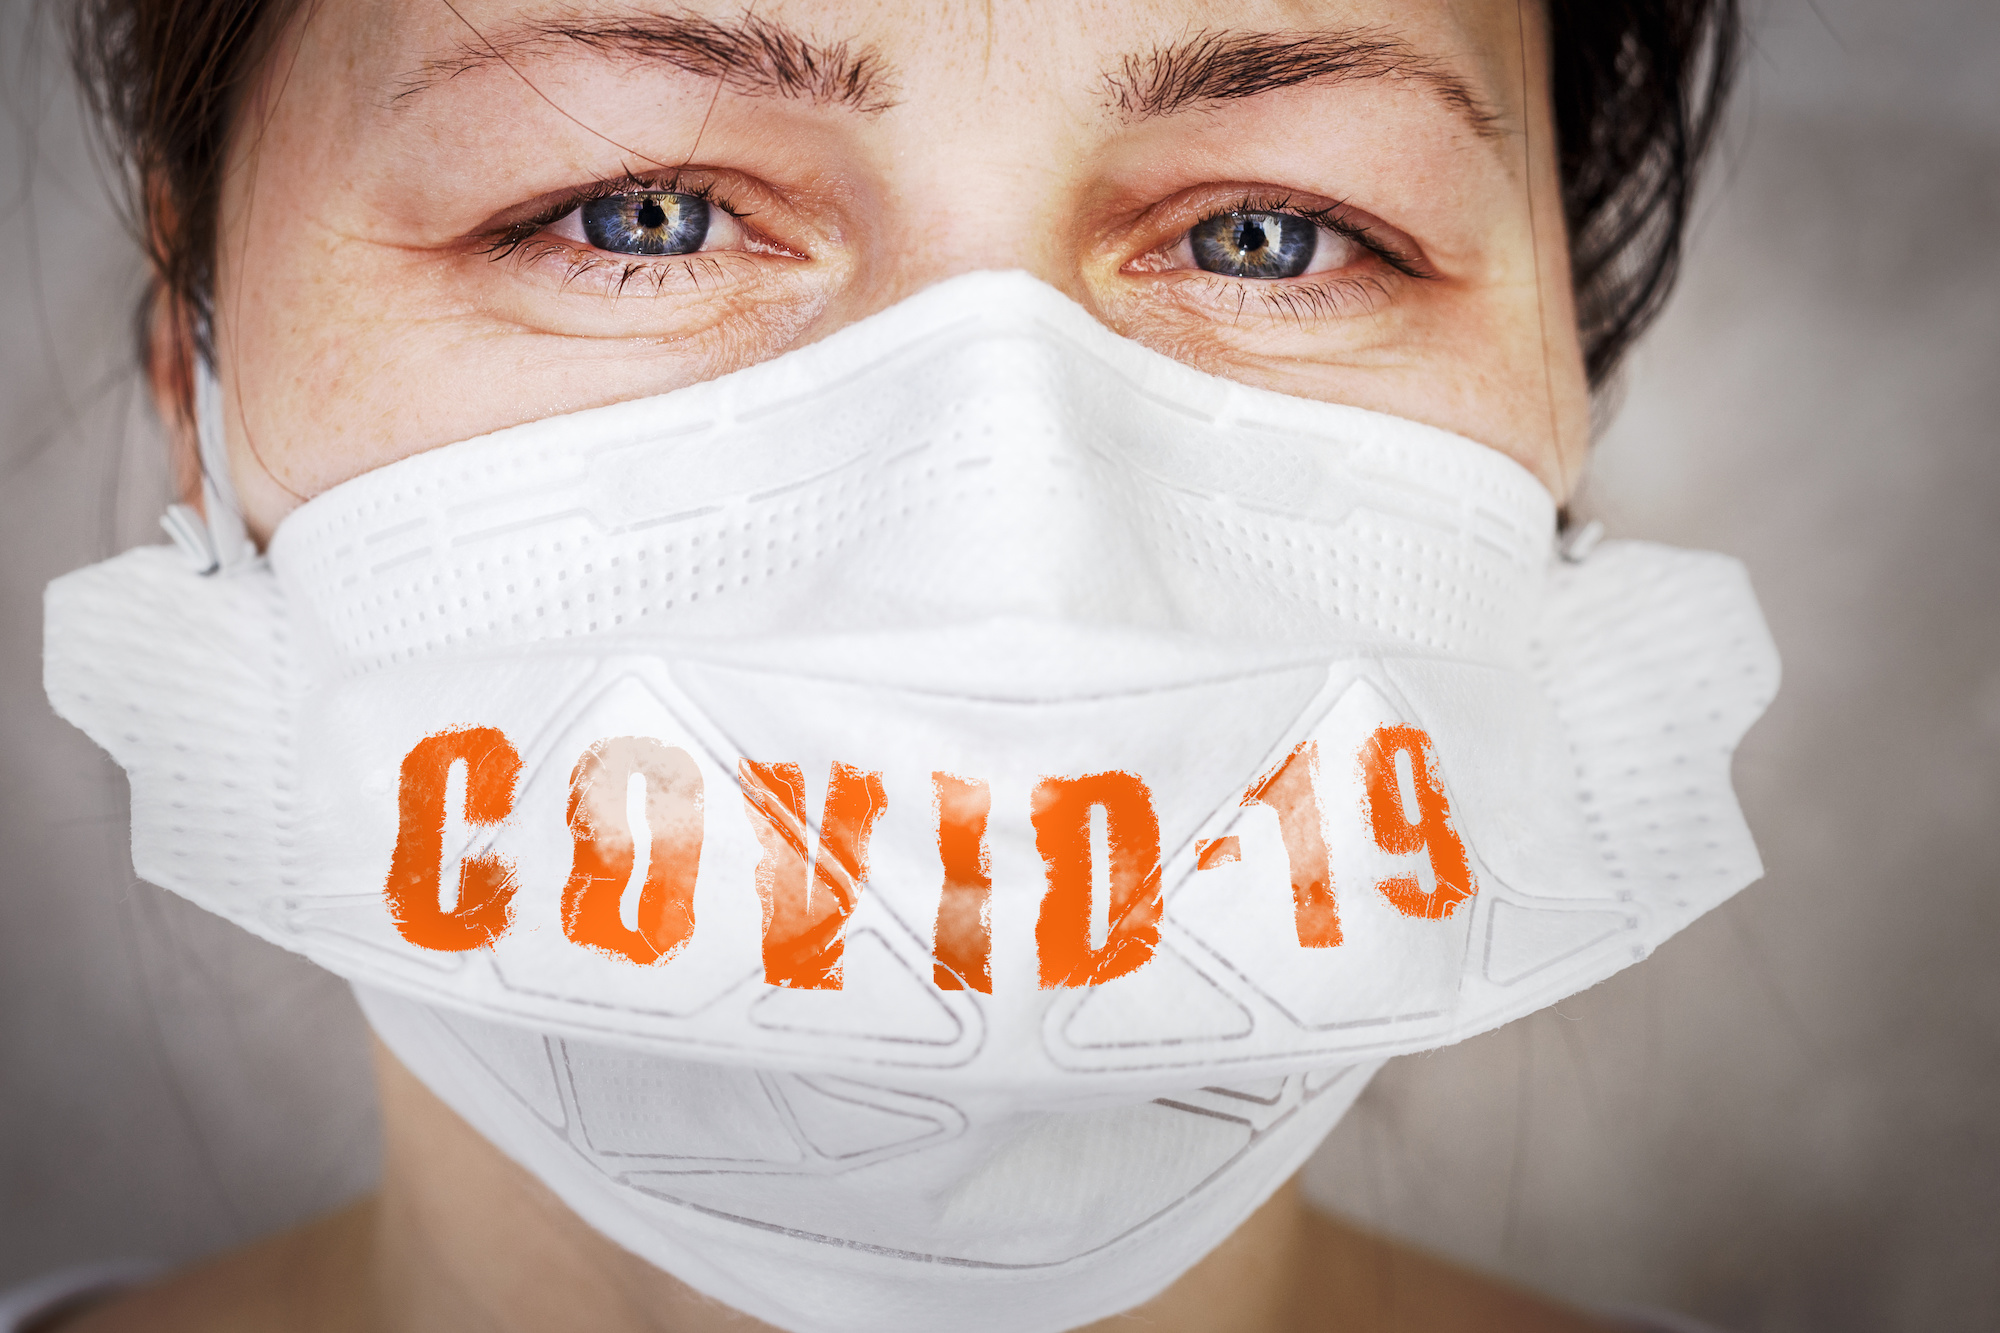 Woman wearing mask helps prevent COVID-19 deaths in US | Vanguard Communications | Denver, CO | San Jose, CA